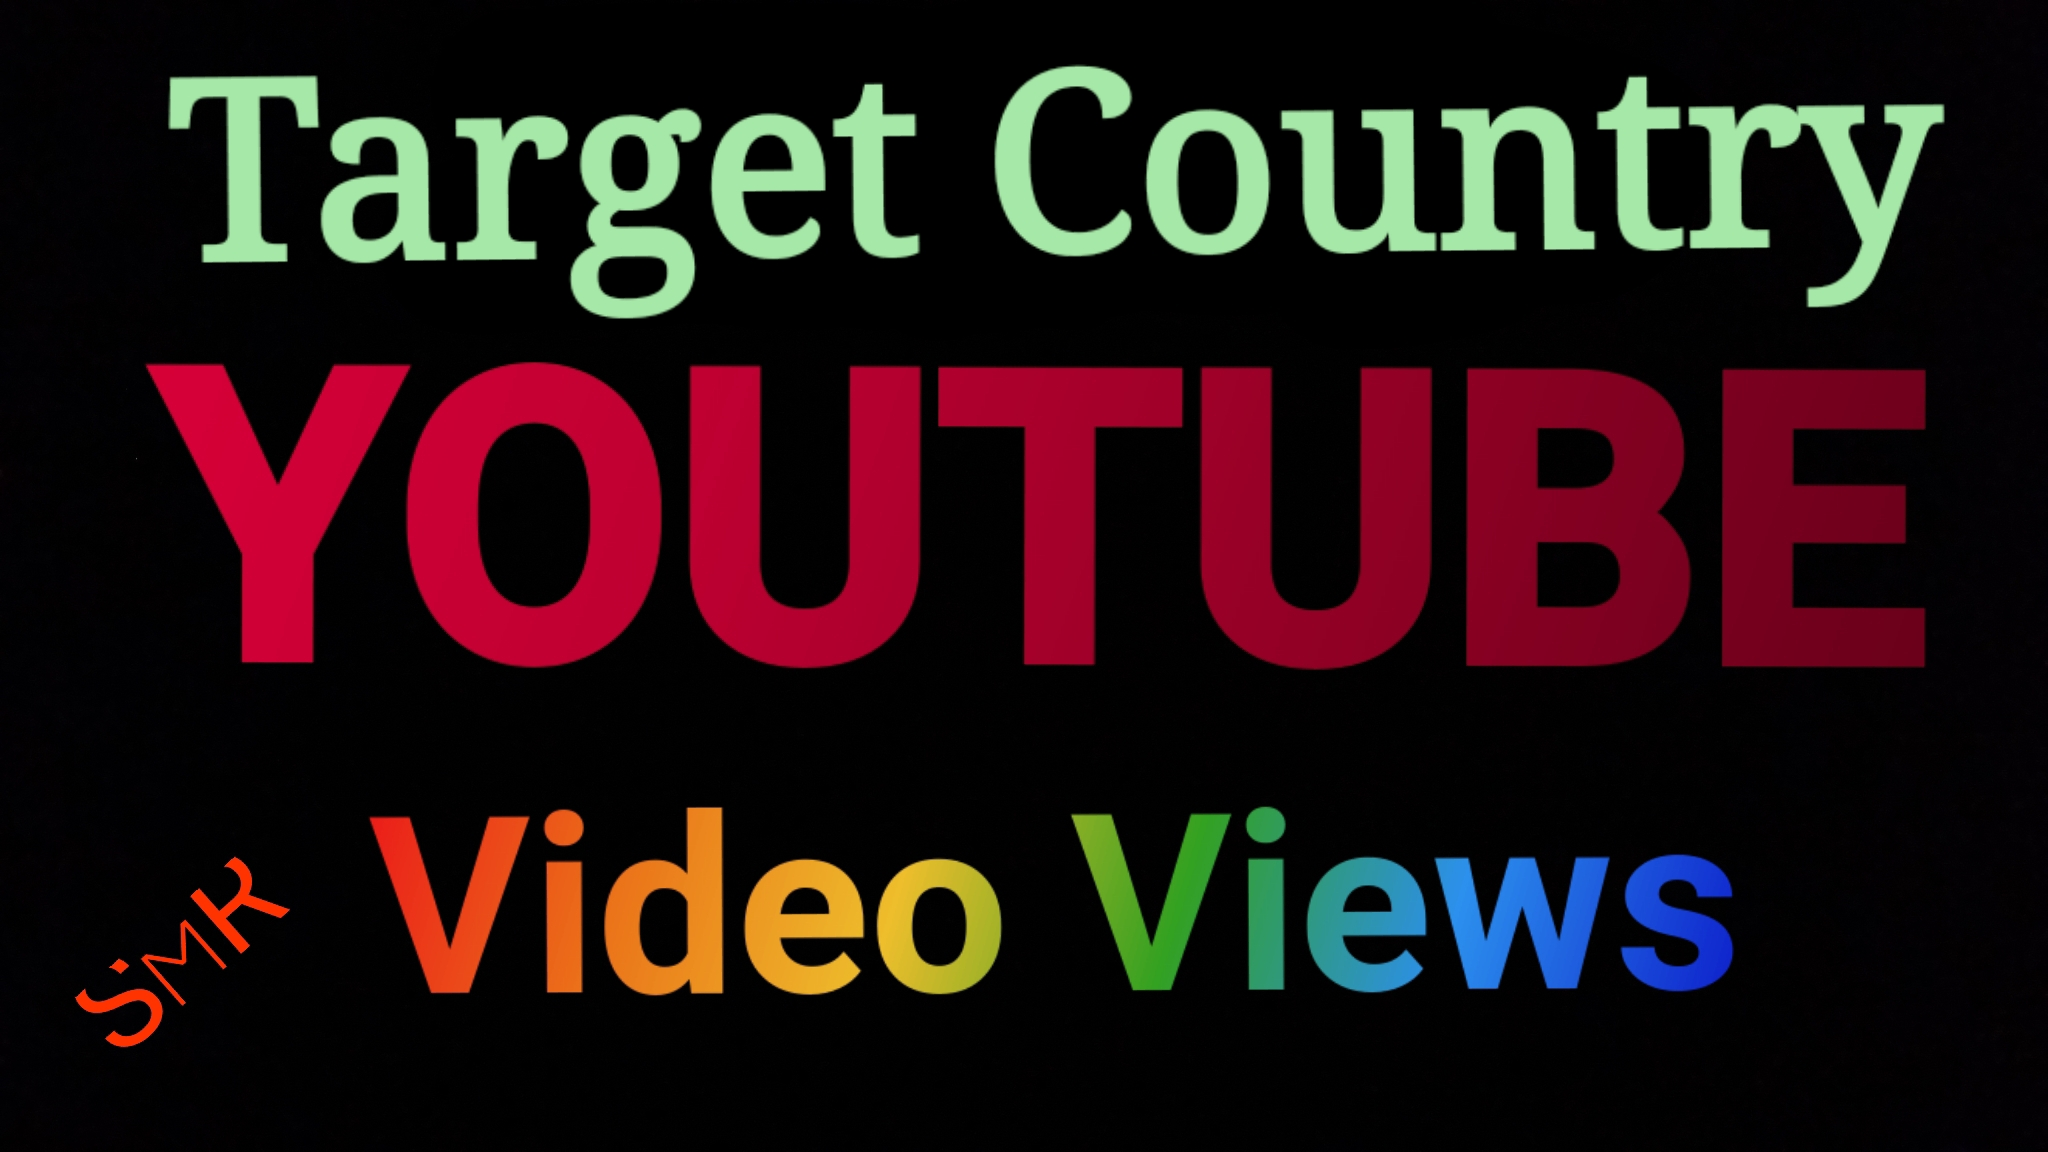 Target country Custom social media link traffic view, like, comment